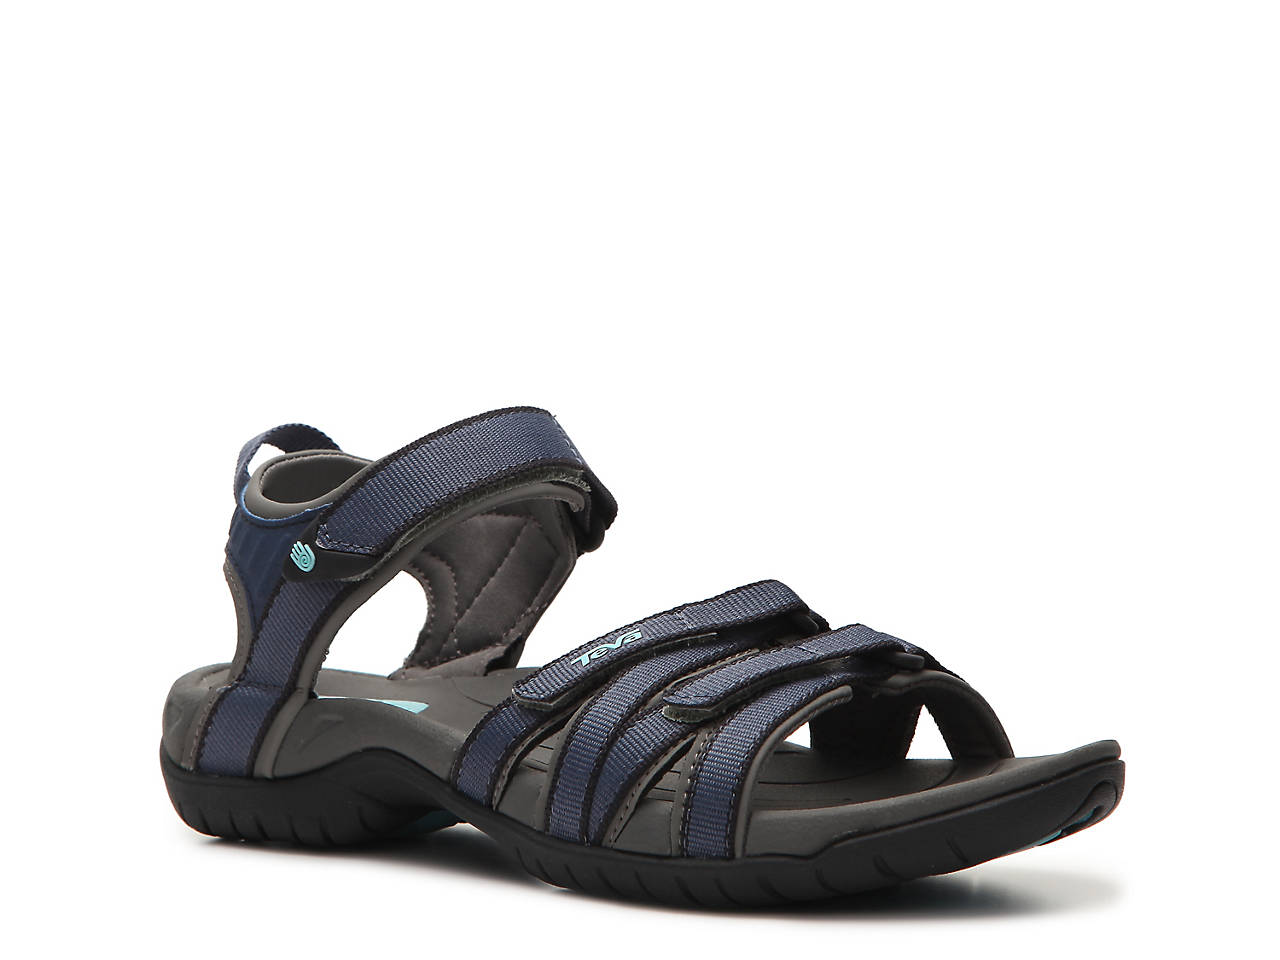 80d463814a76 Teva Tirra Sport Sandal Women s Shoes